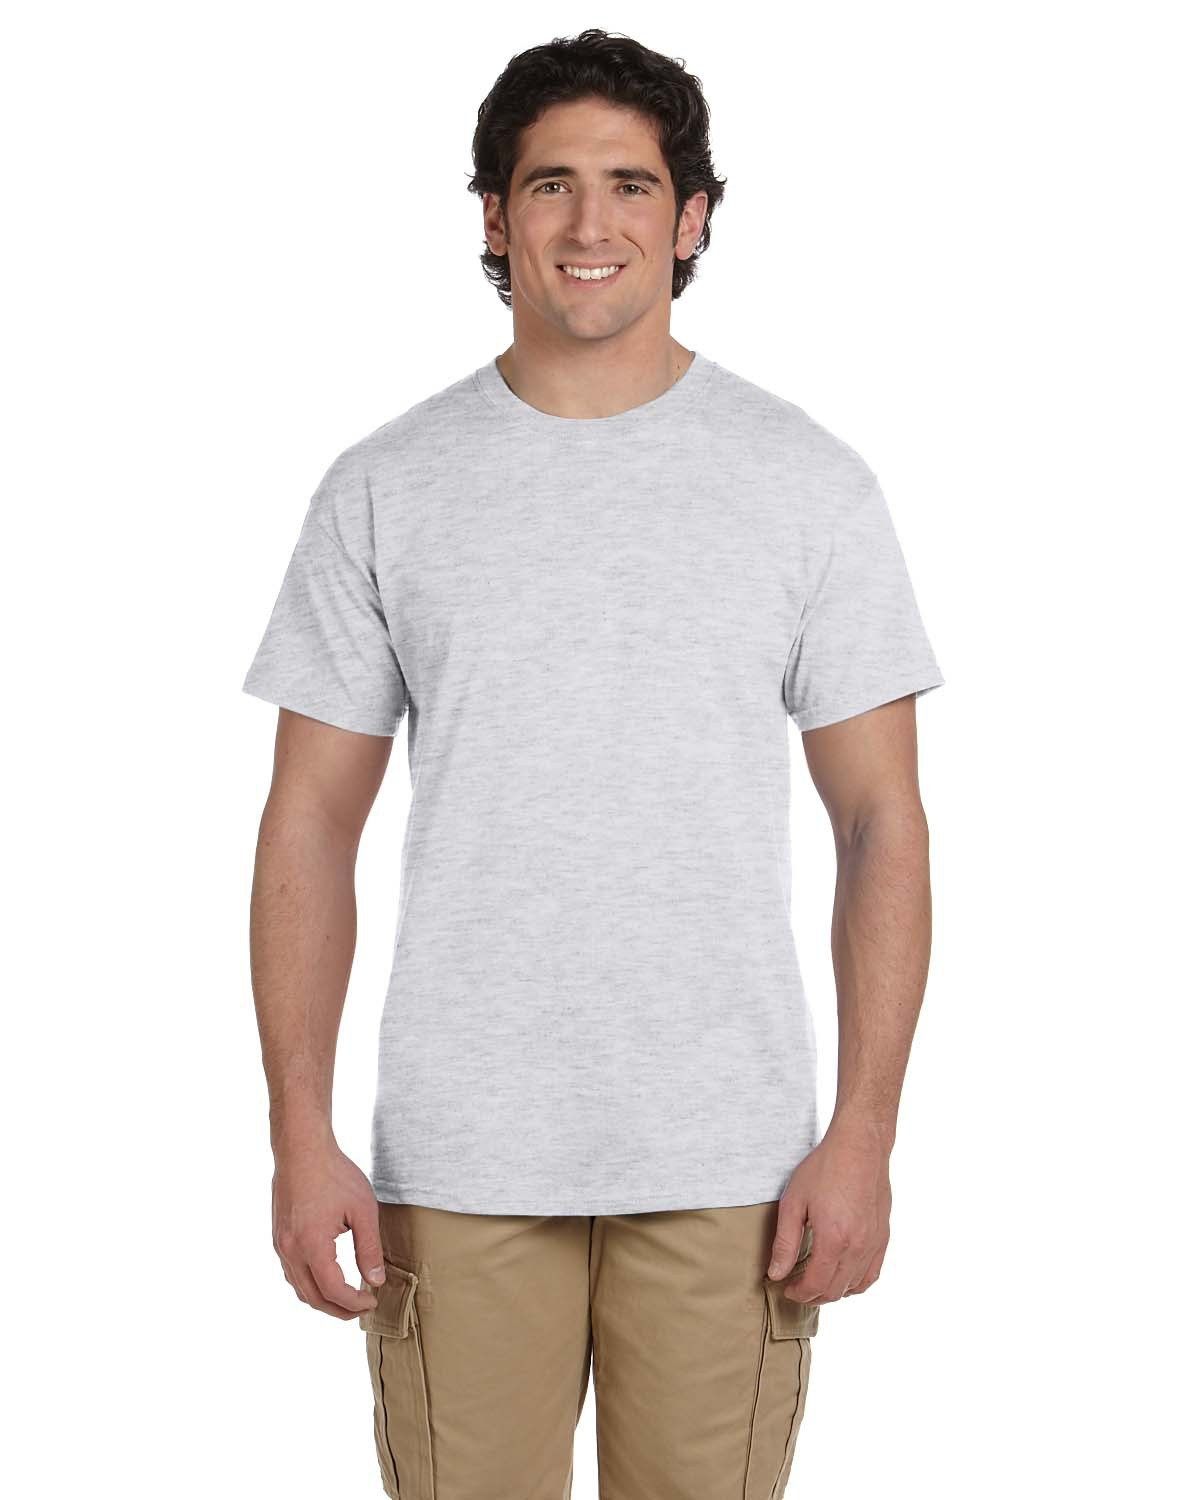 Fruit of the Loom Adult HD Cotton™ T-Shirt ASH